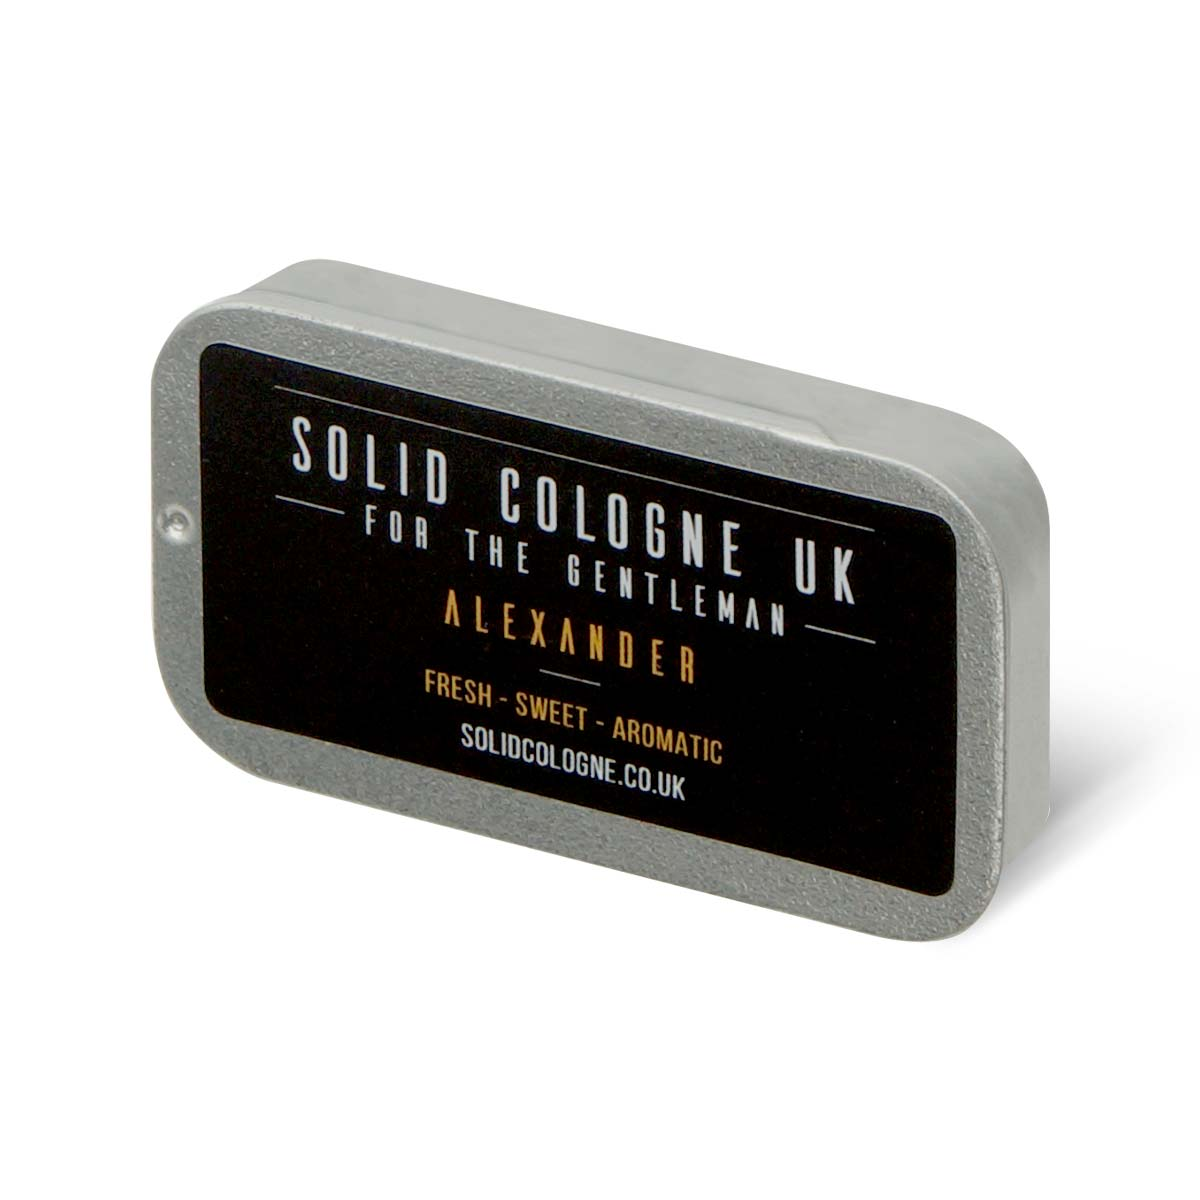 Solid Cologne UK - Alexander 18ml